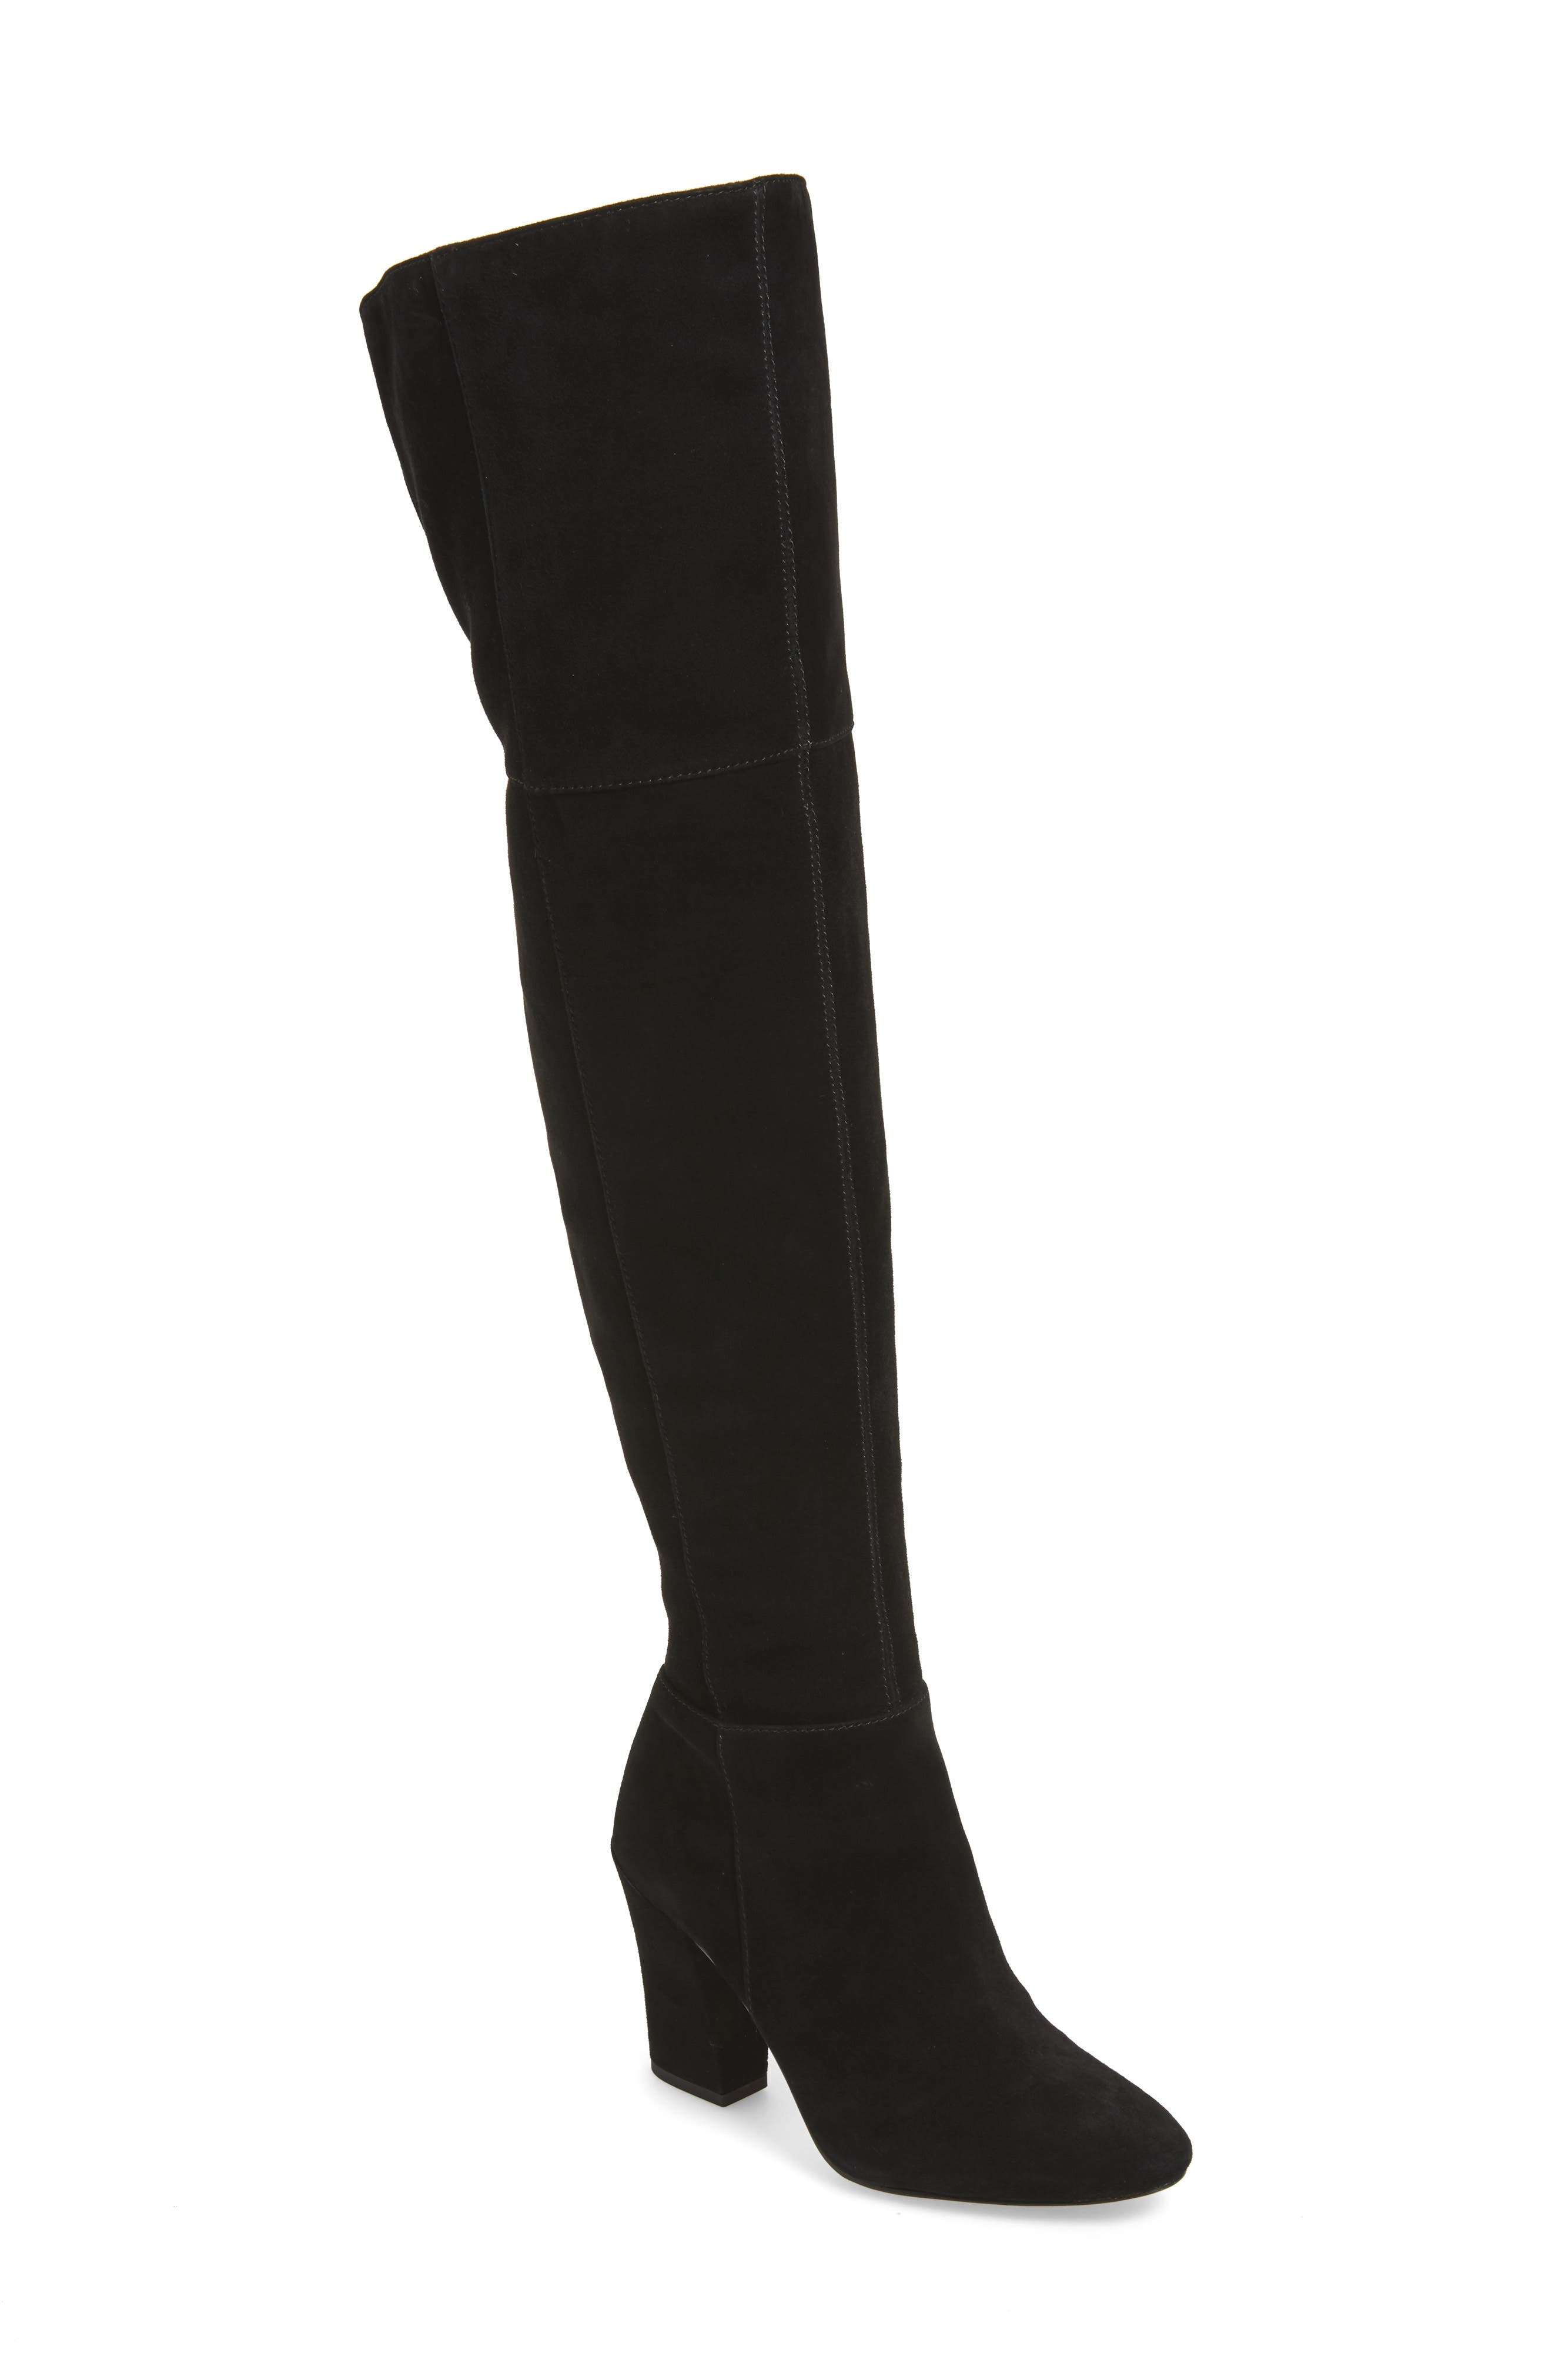 Louise et Cie Vernon Over the Knee Boot (Women)